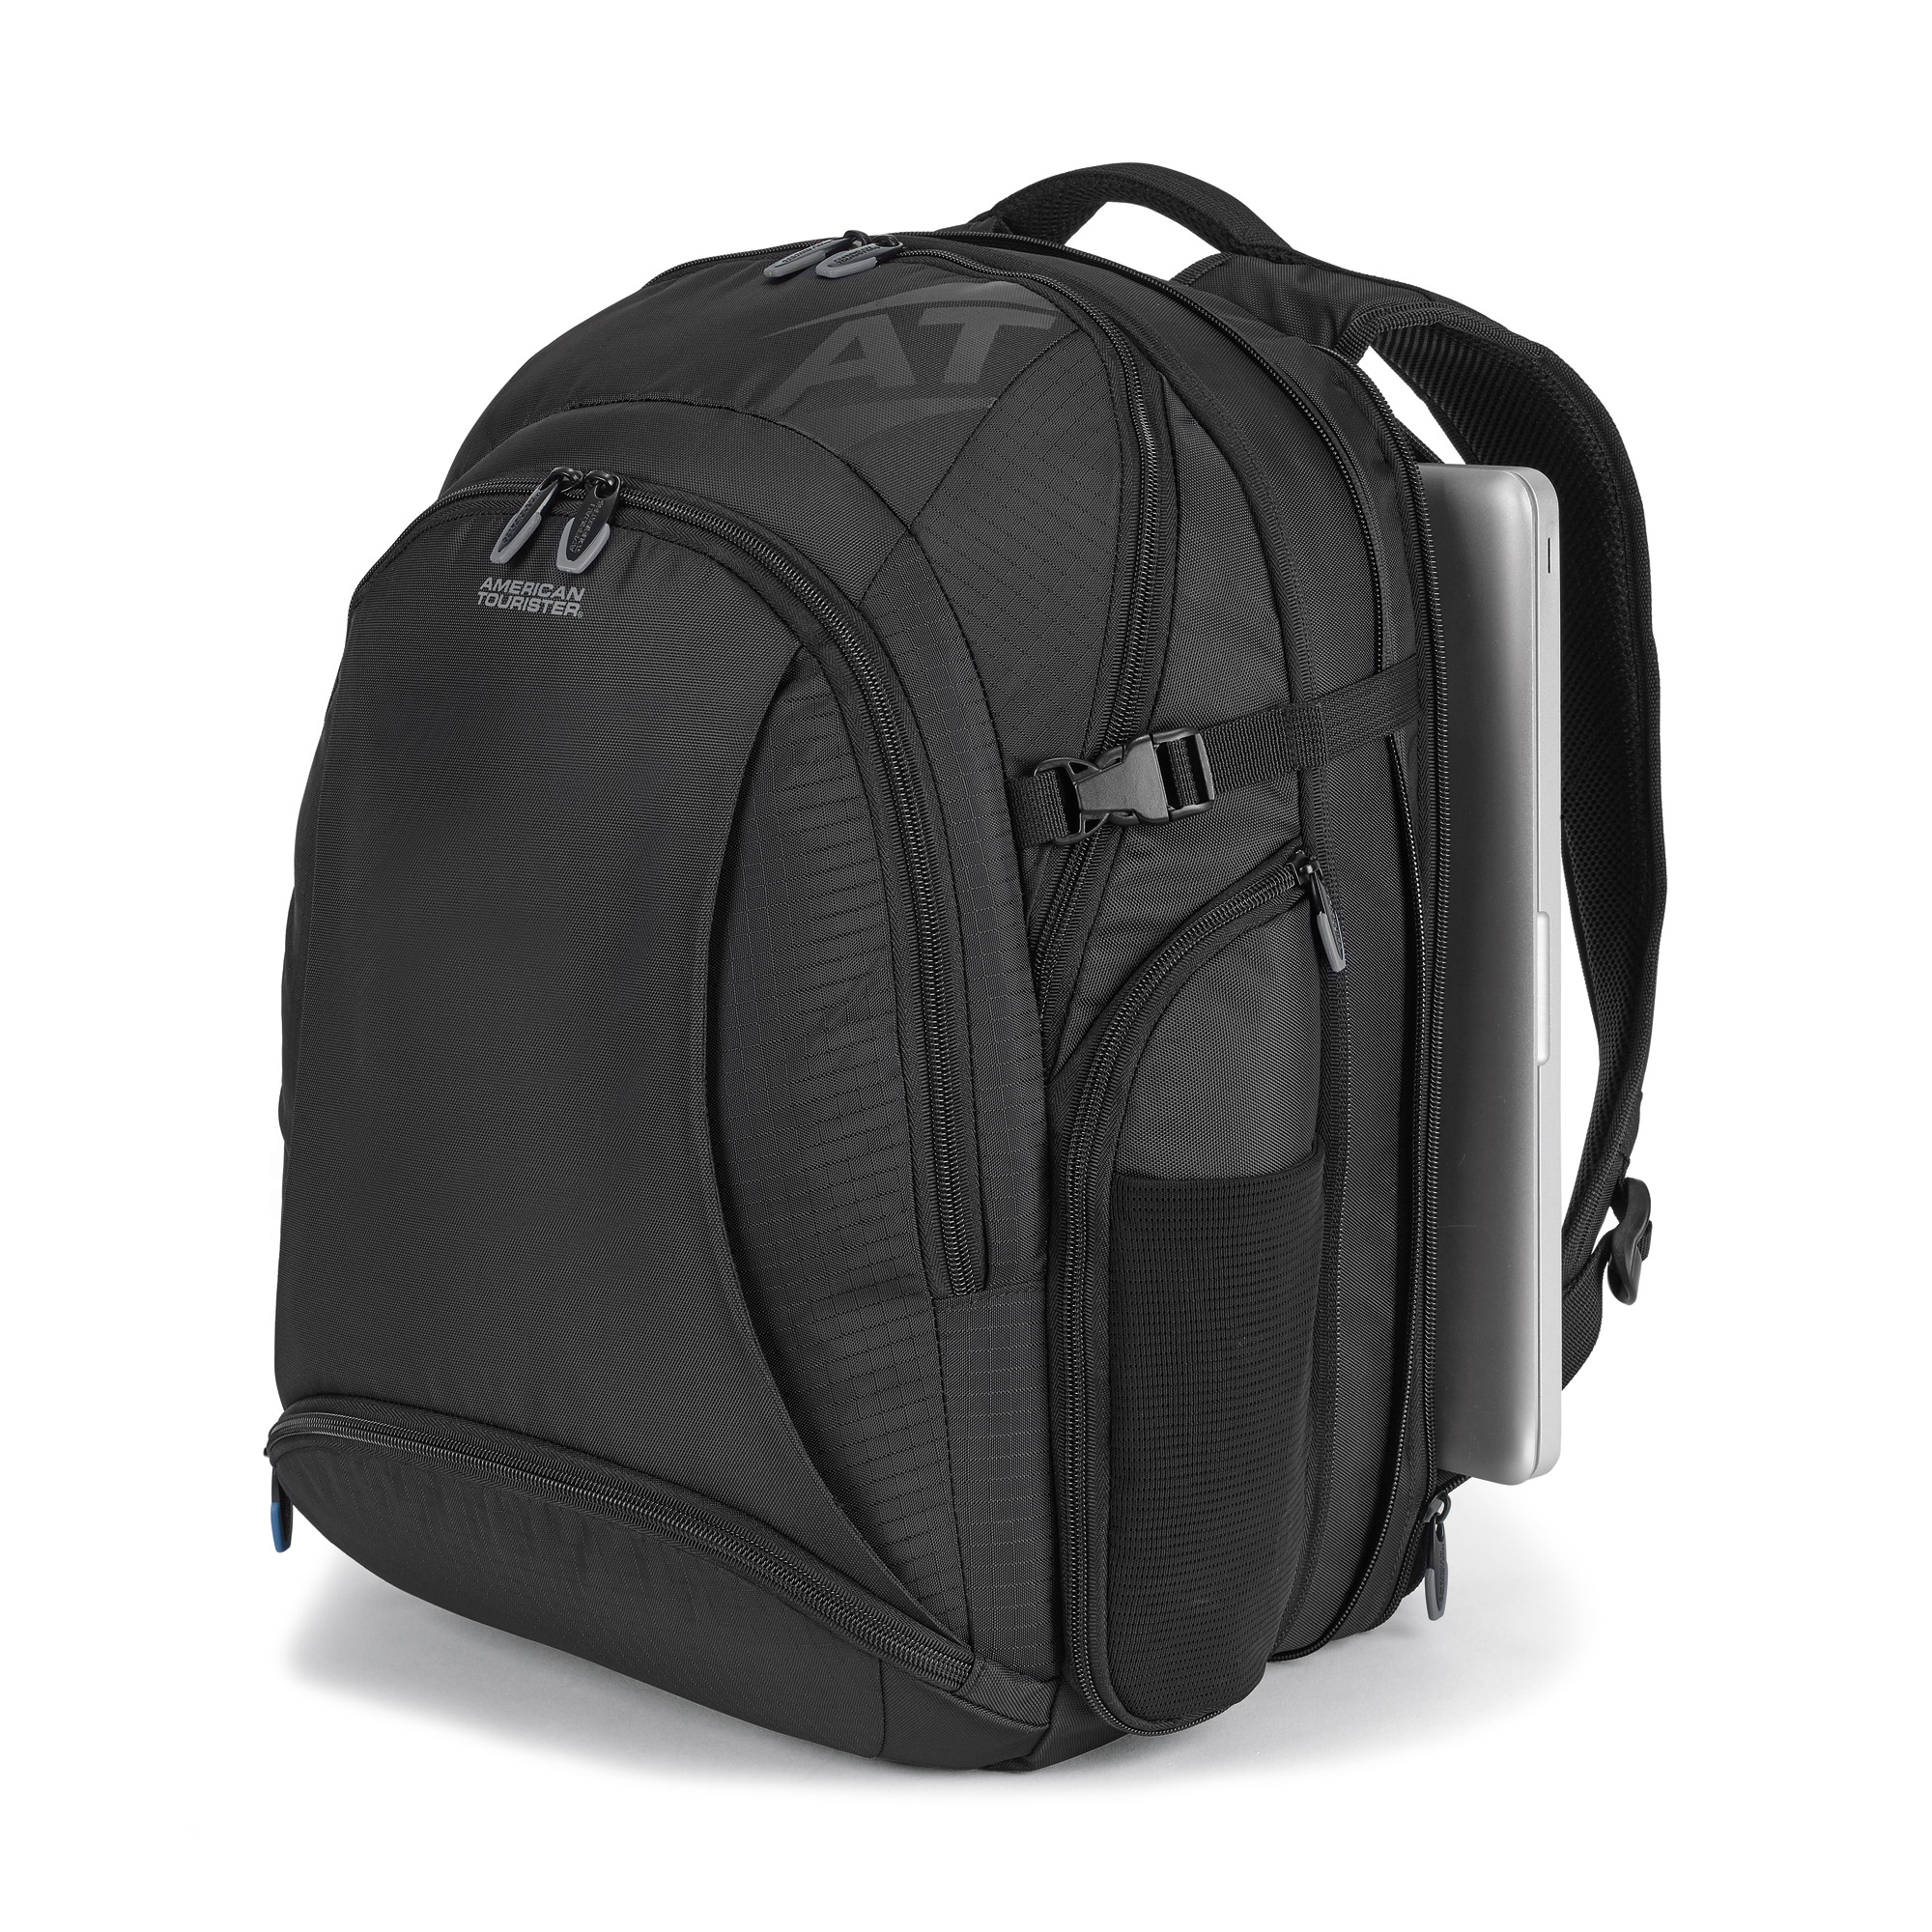 Expandable gusset with tension buckles provides the main compartment with extra capacity.